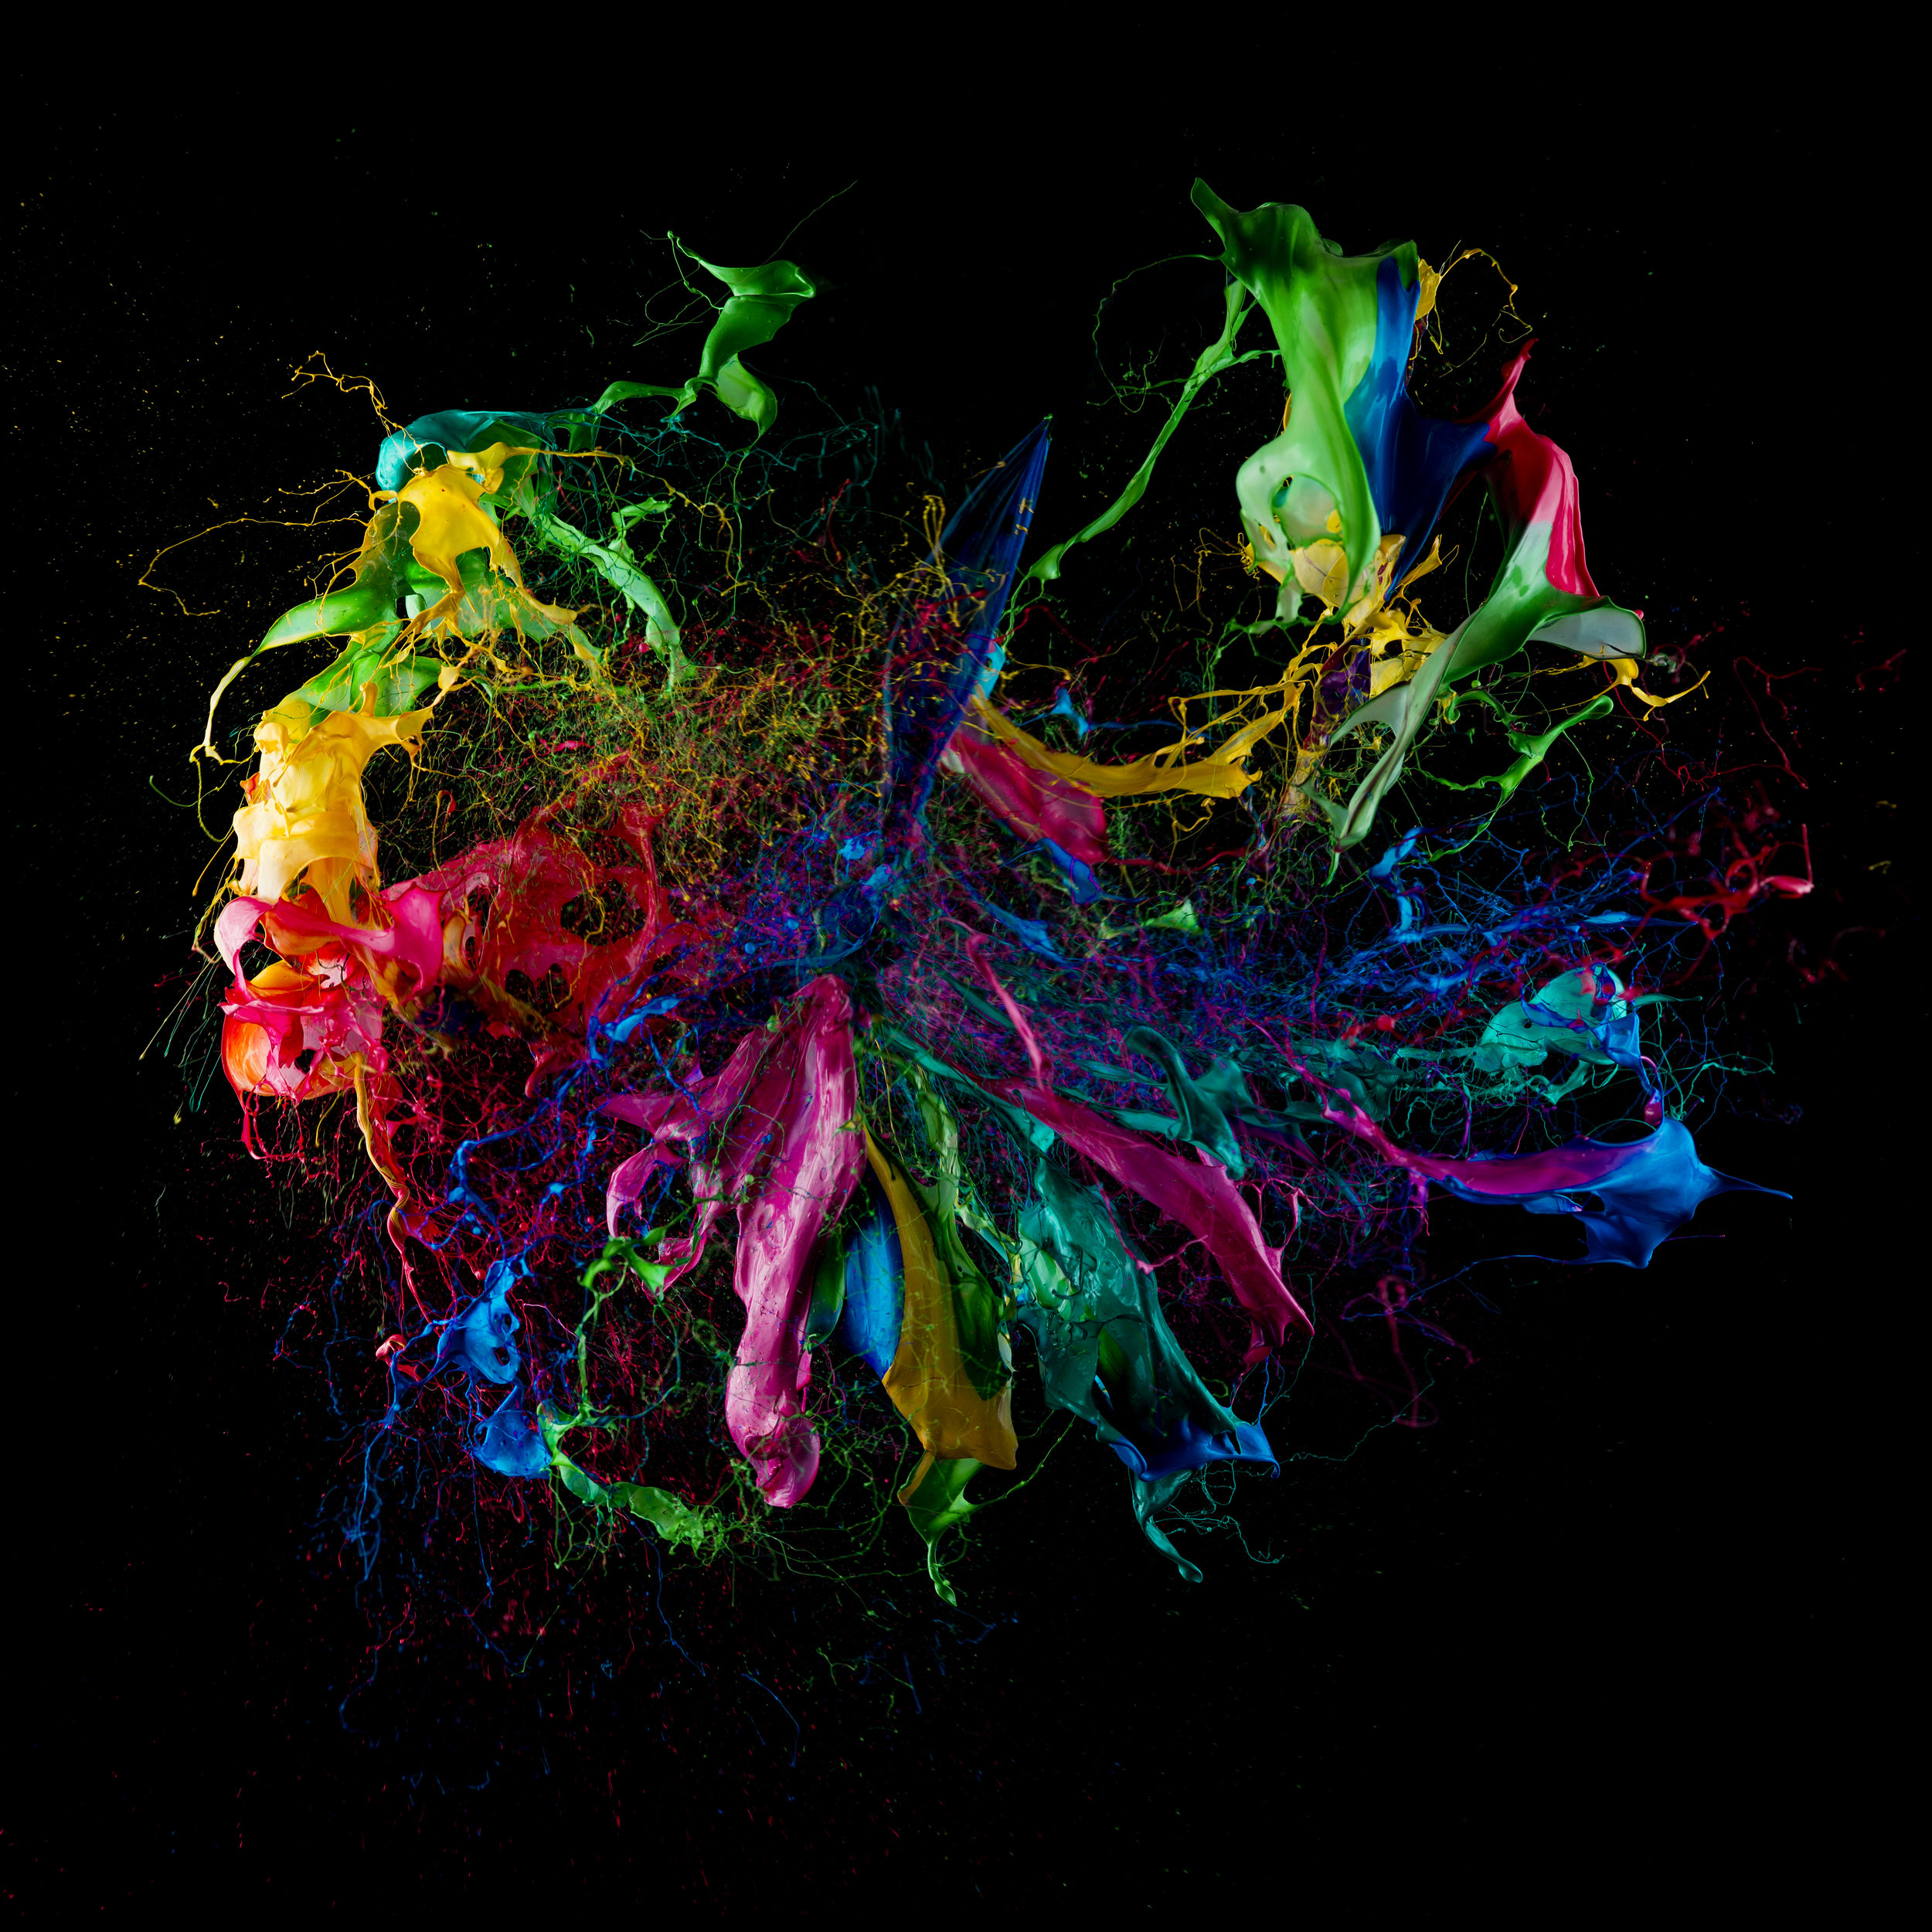 PAINT IN MOTION